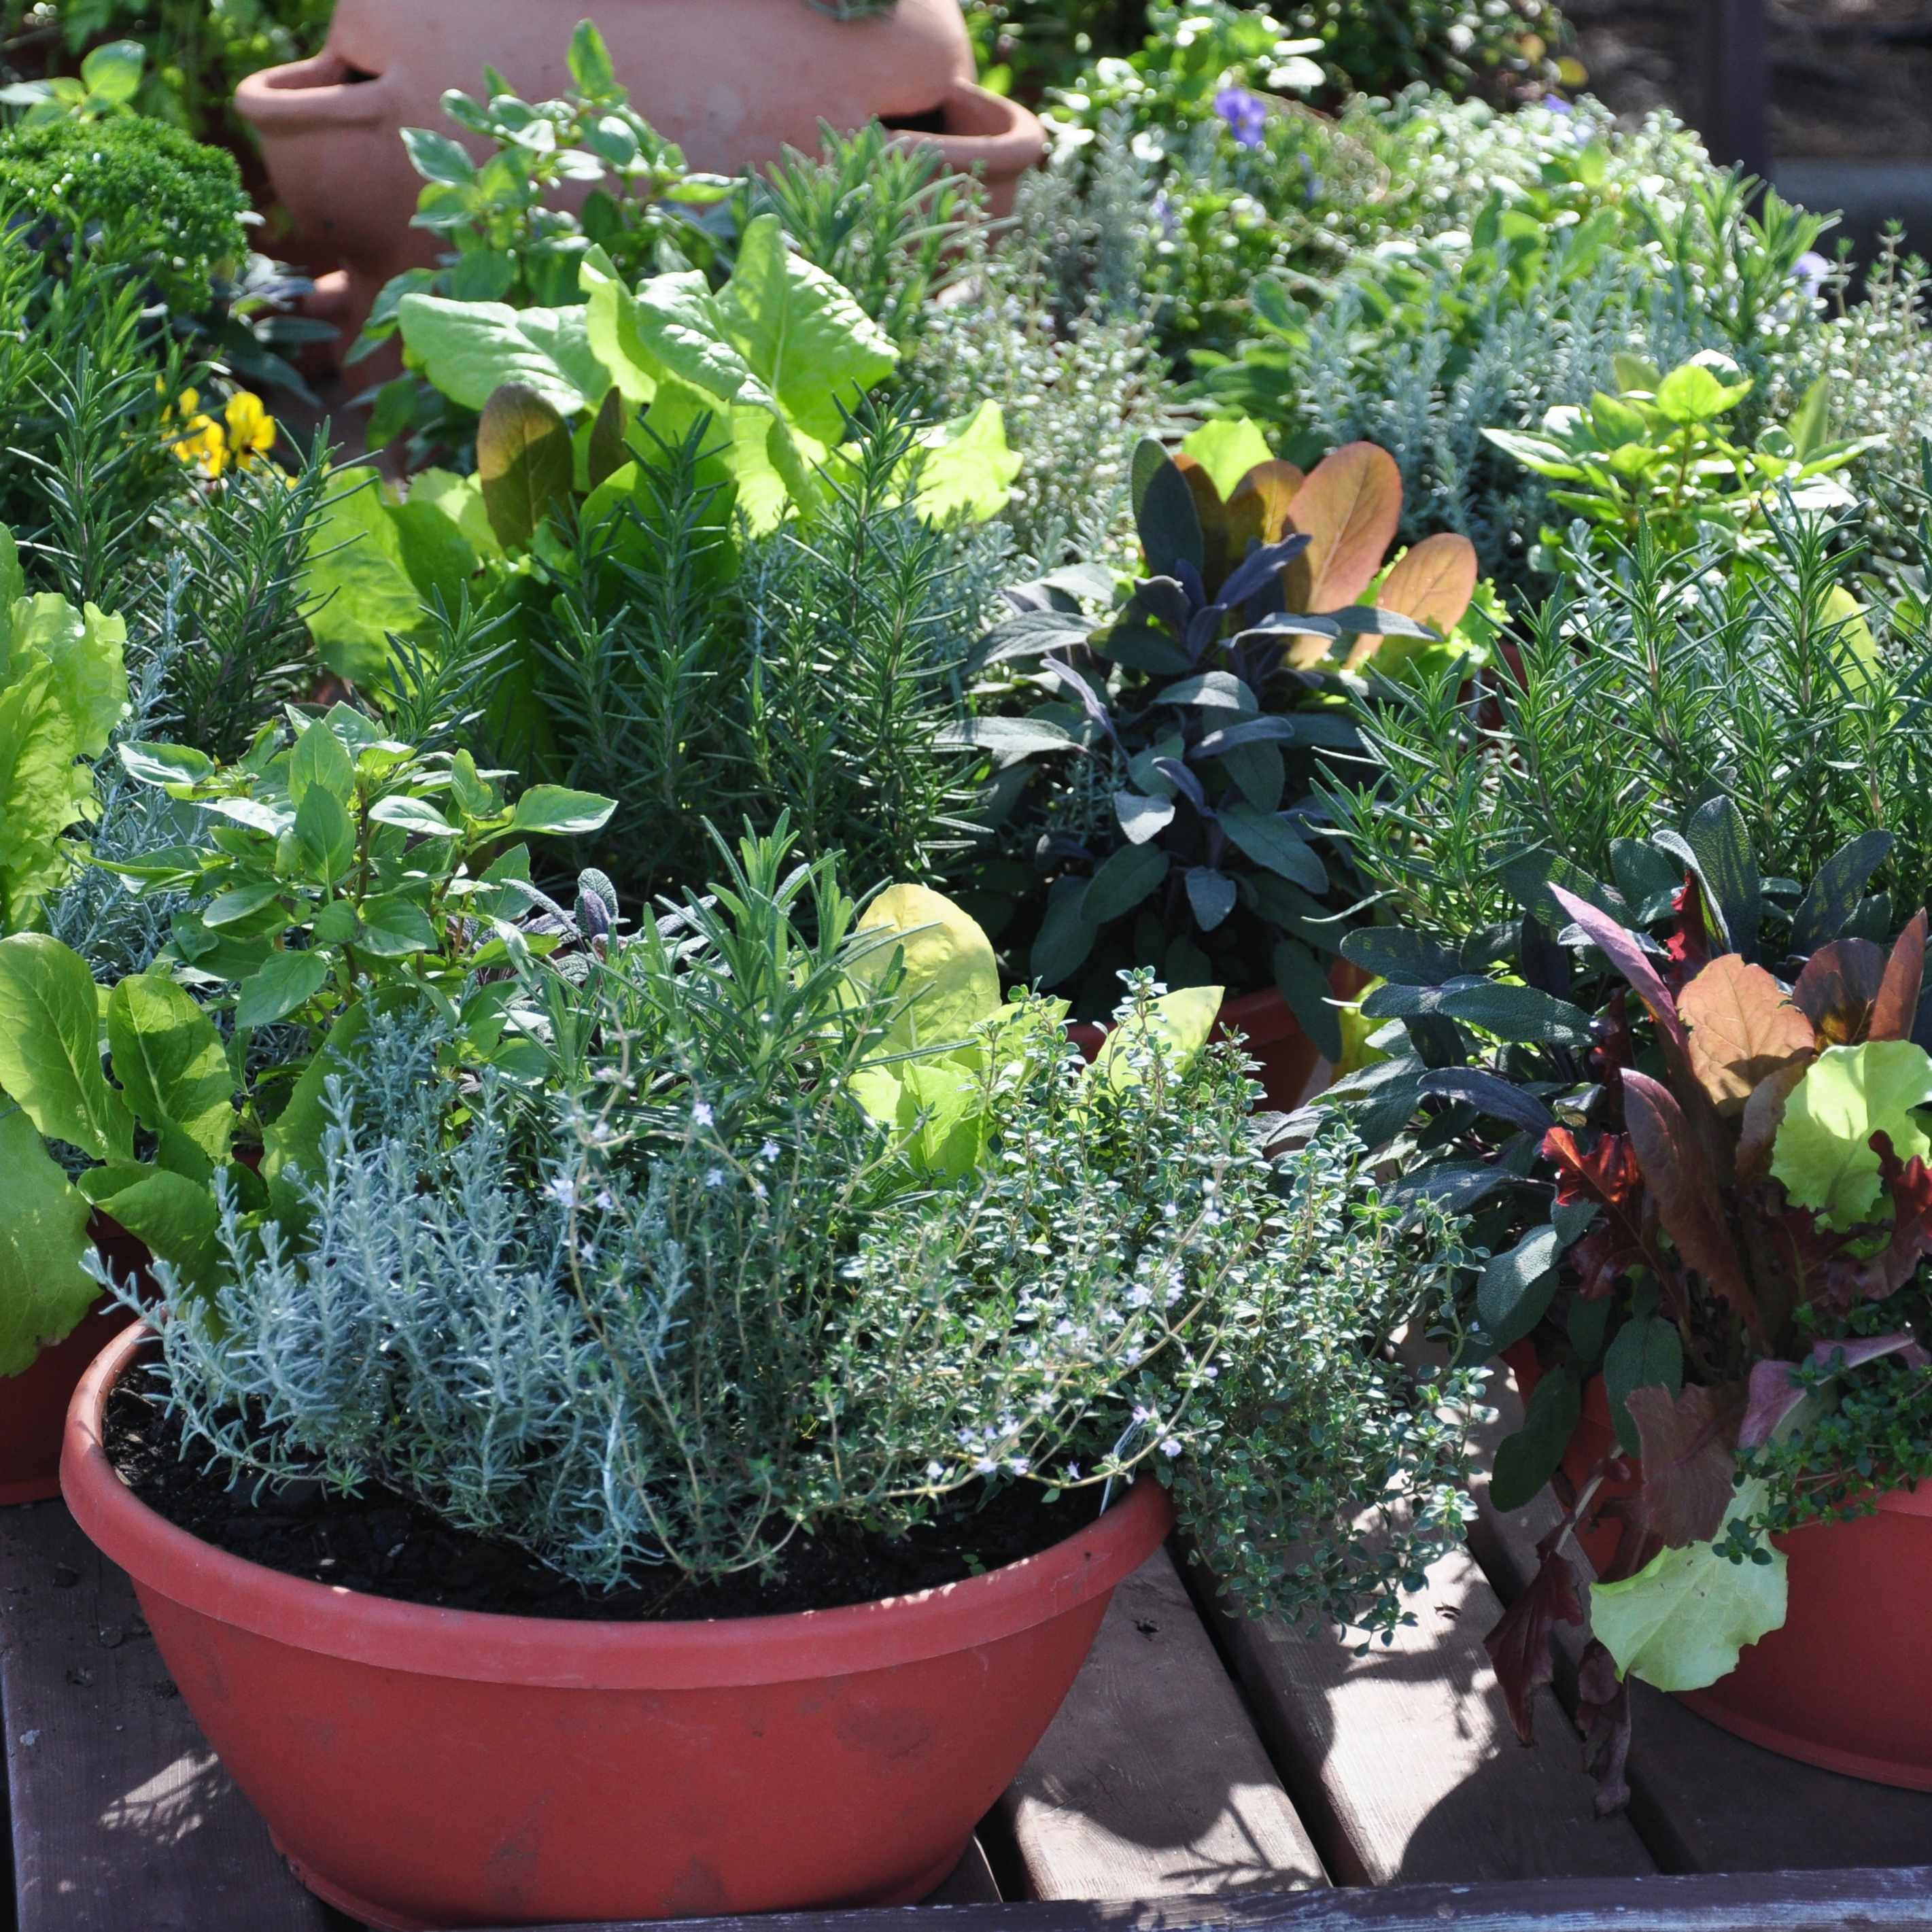 a container garden with plants and pots of fresh vegetables and herbs